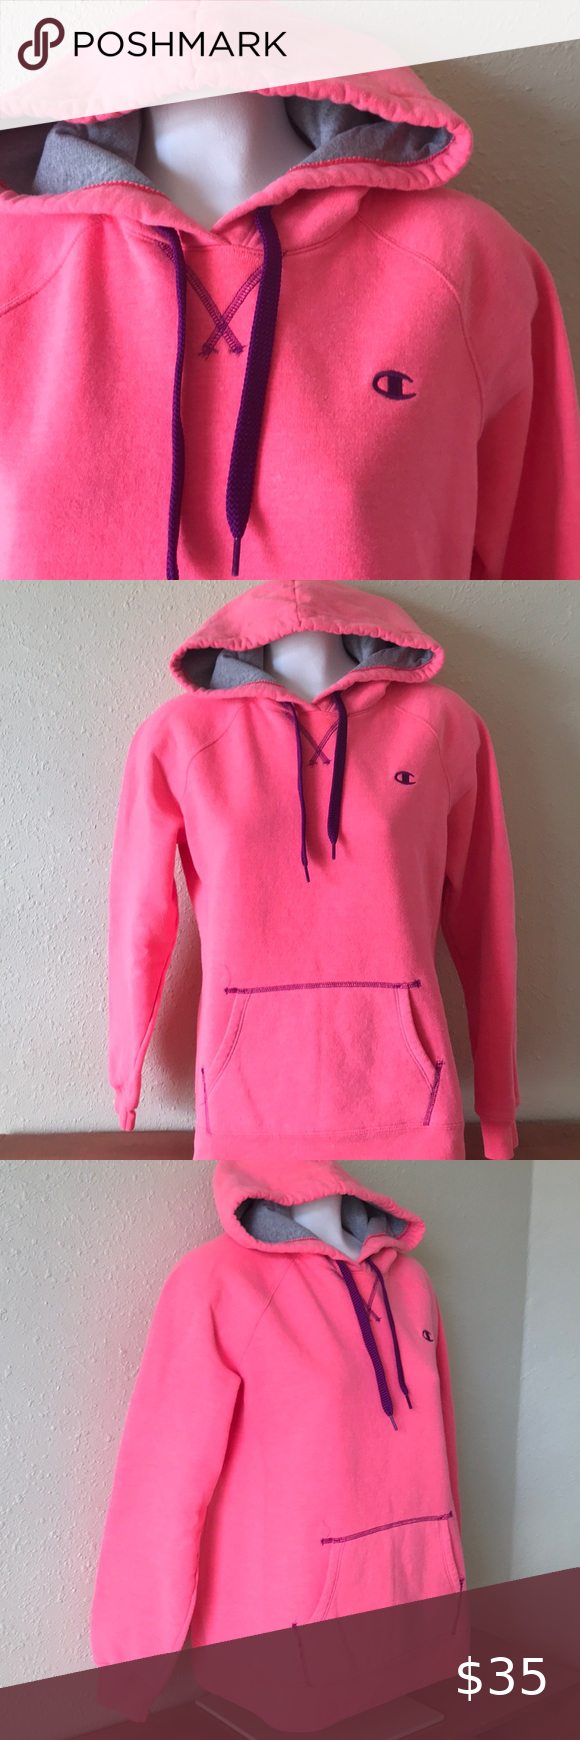 Champion Hoodie Pink Coral flamingo sweatshirt Fun color vintage champion hoodie with pocket in front See pics for measurements Smoke free home � Thank you for shopping � my closet Champion Tops Sweatshirts & Hoodies